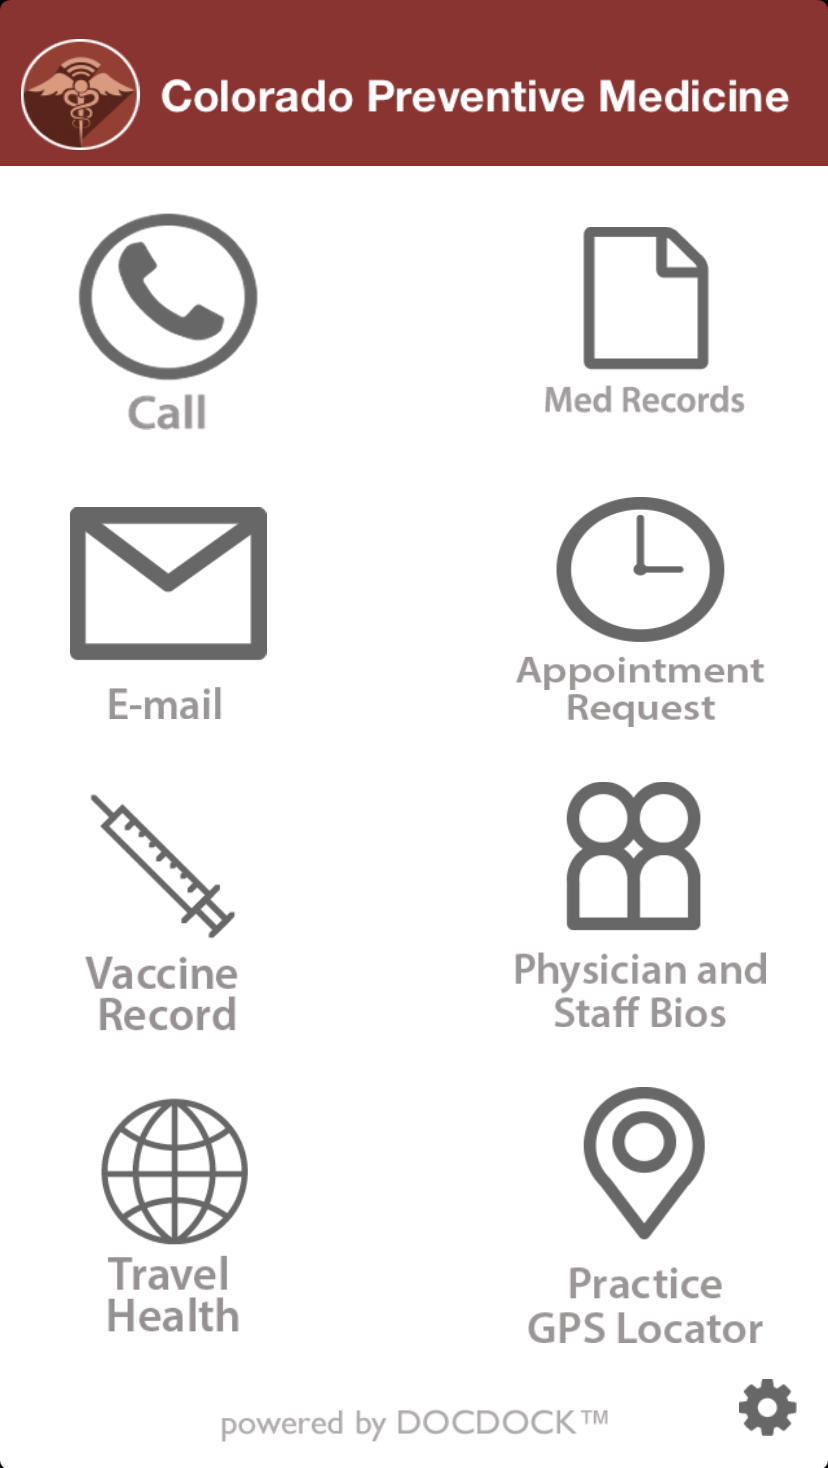 DocDock makes it simple and quick for people to access and communicate with their healthcare team. Whether it's a simple appointment request or an important inquiry, DocDock makes it easy for providers to connect with patients and give them the care they need.